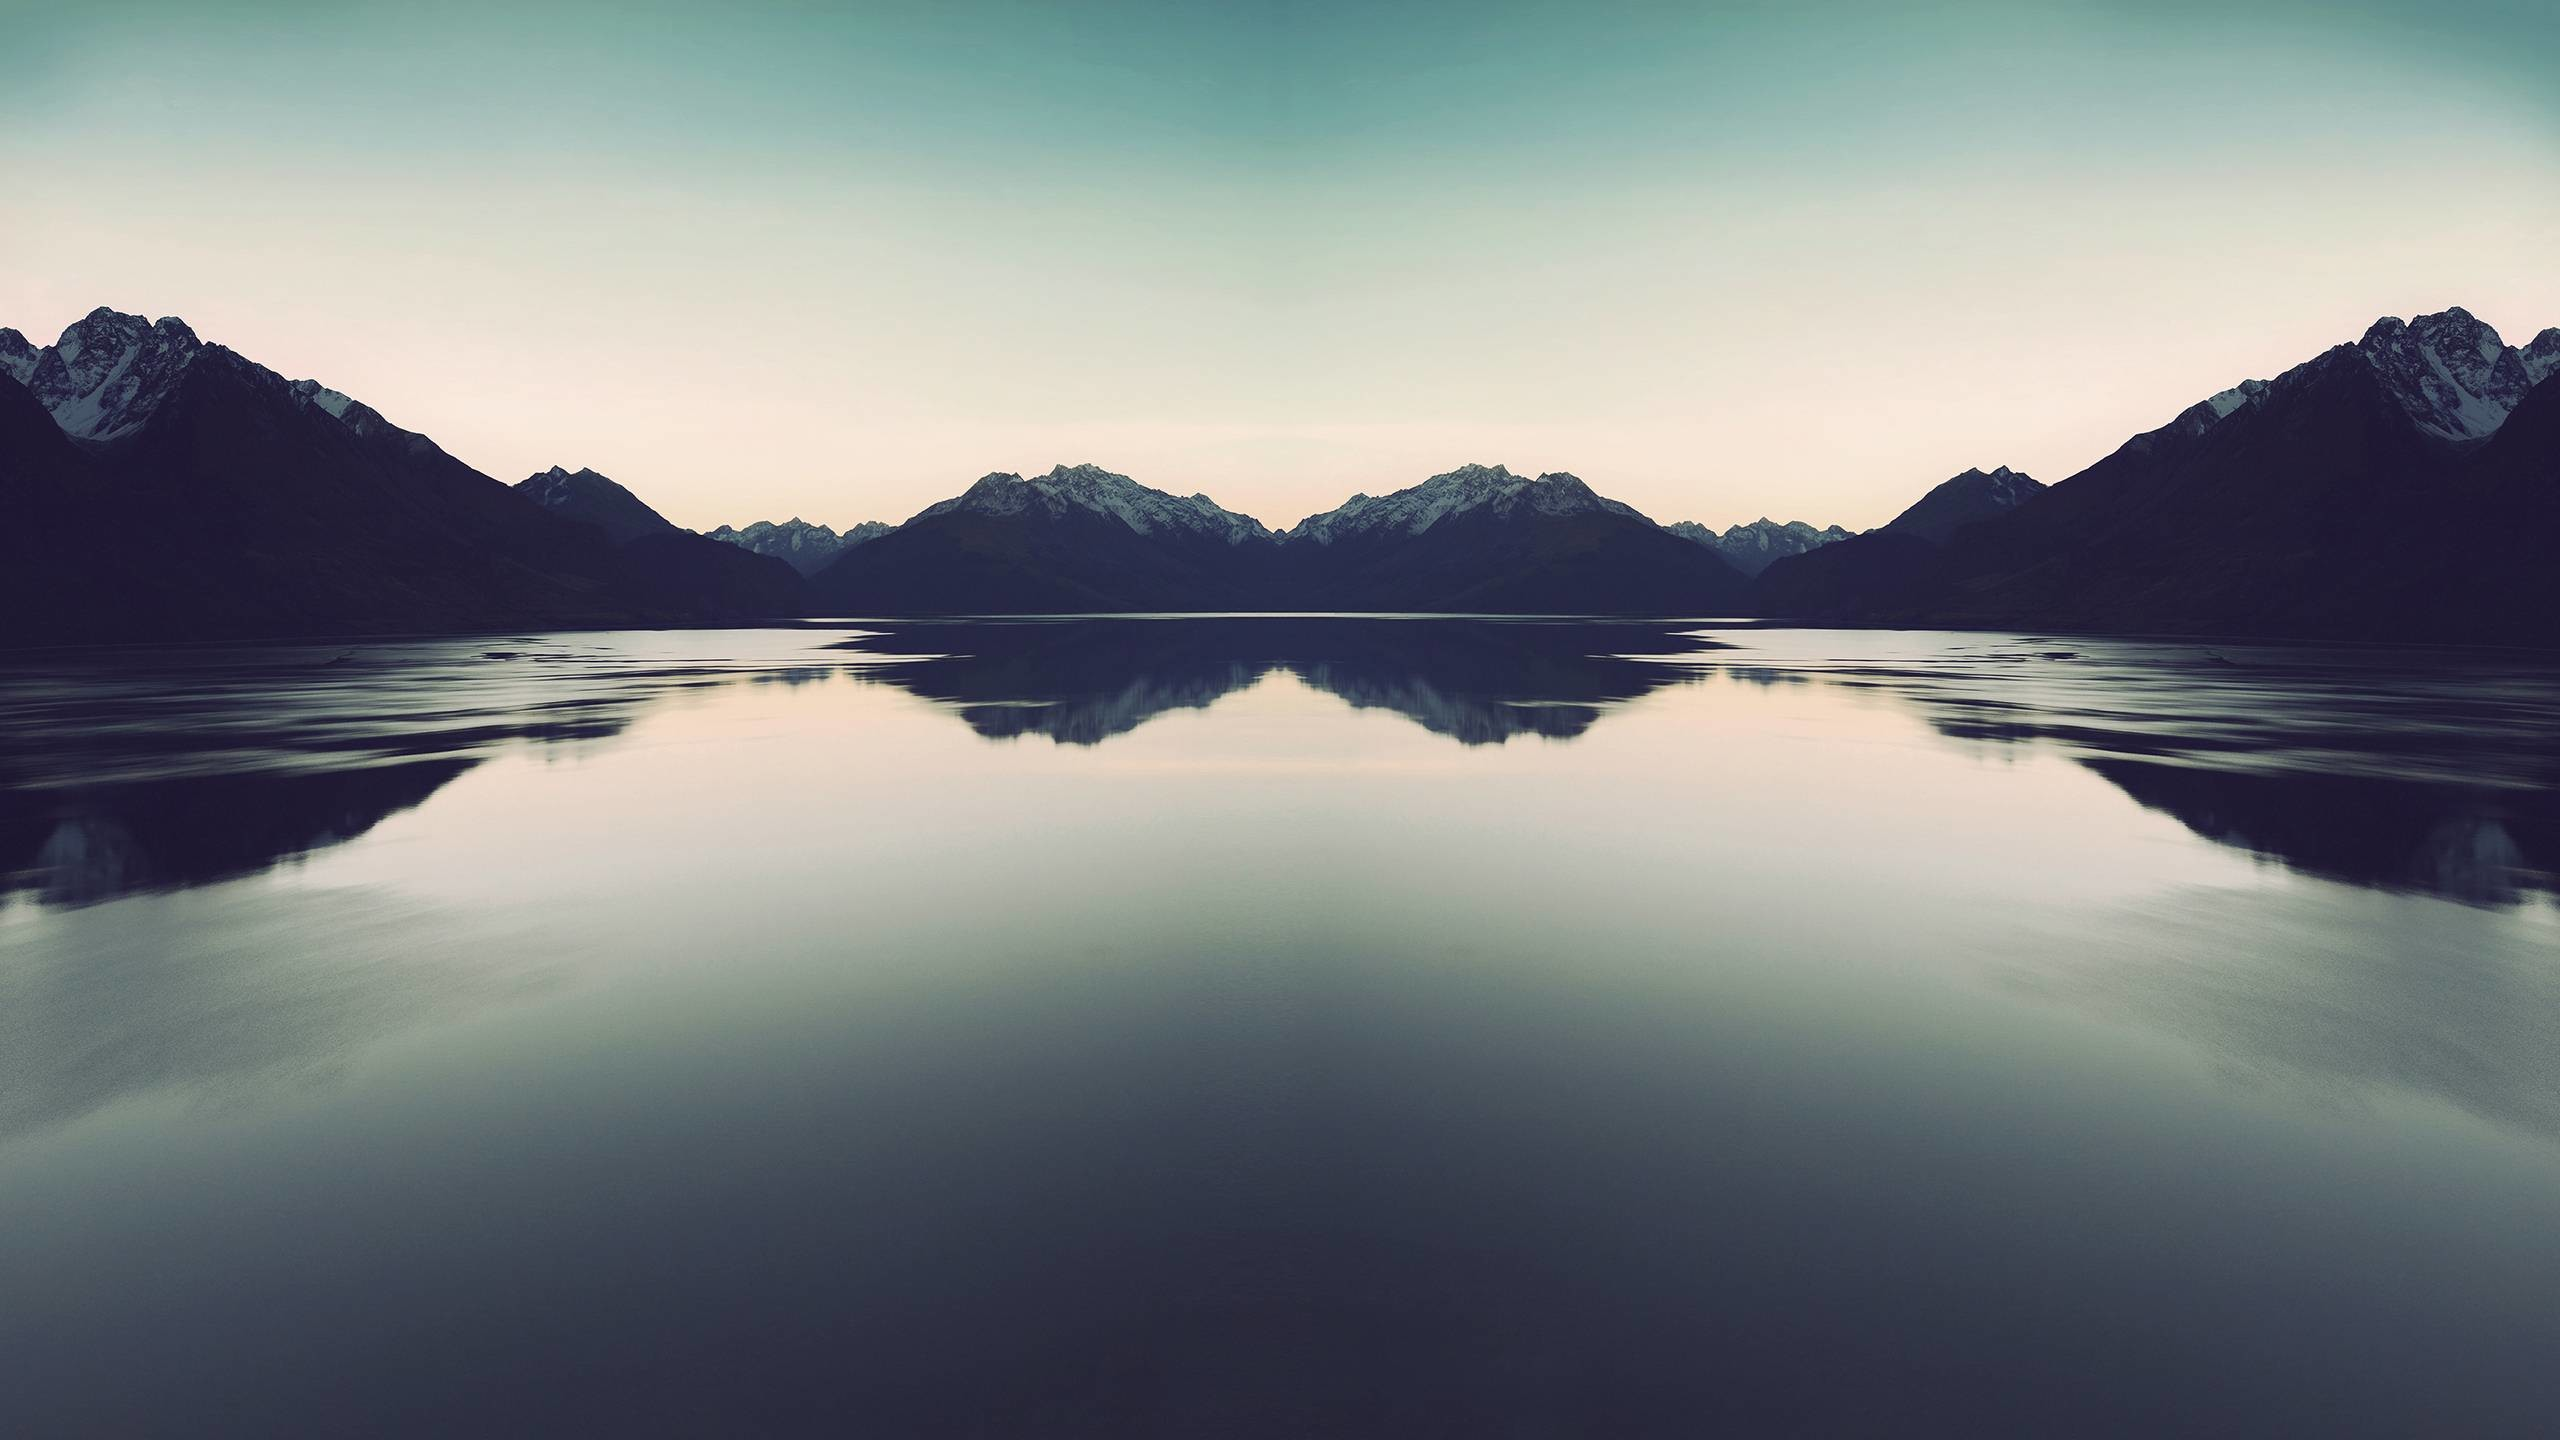 Res: 2560x1440, [1920x1080] Blurry/Foggy and Calm Wallpapers